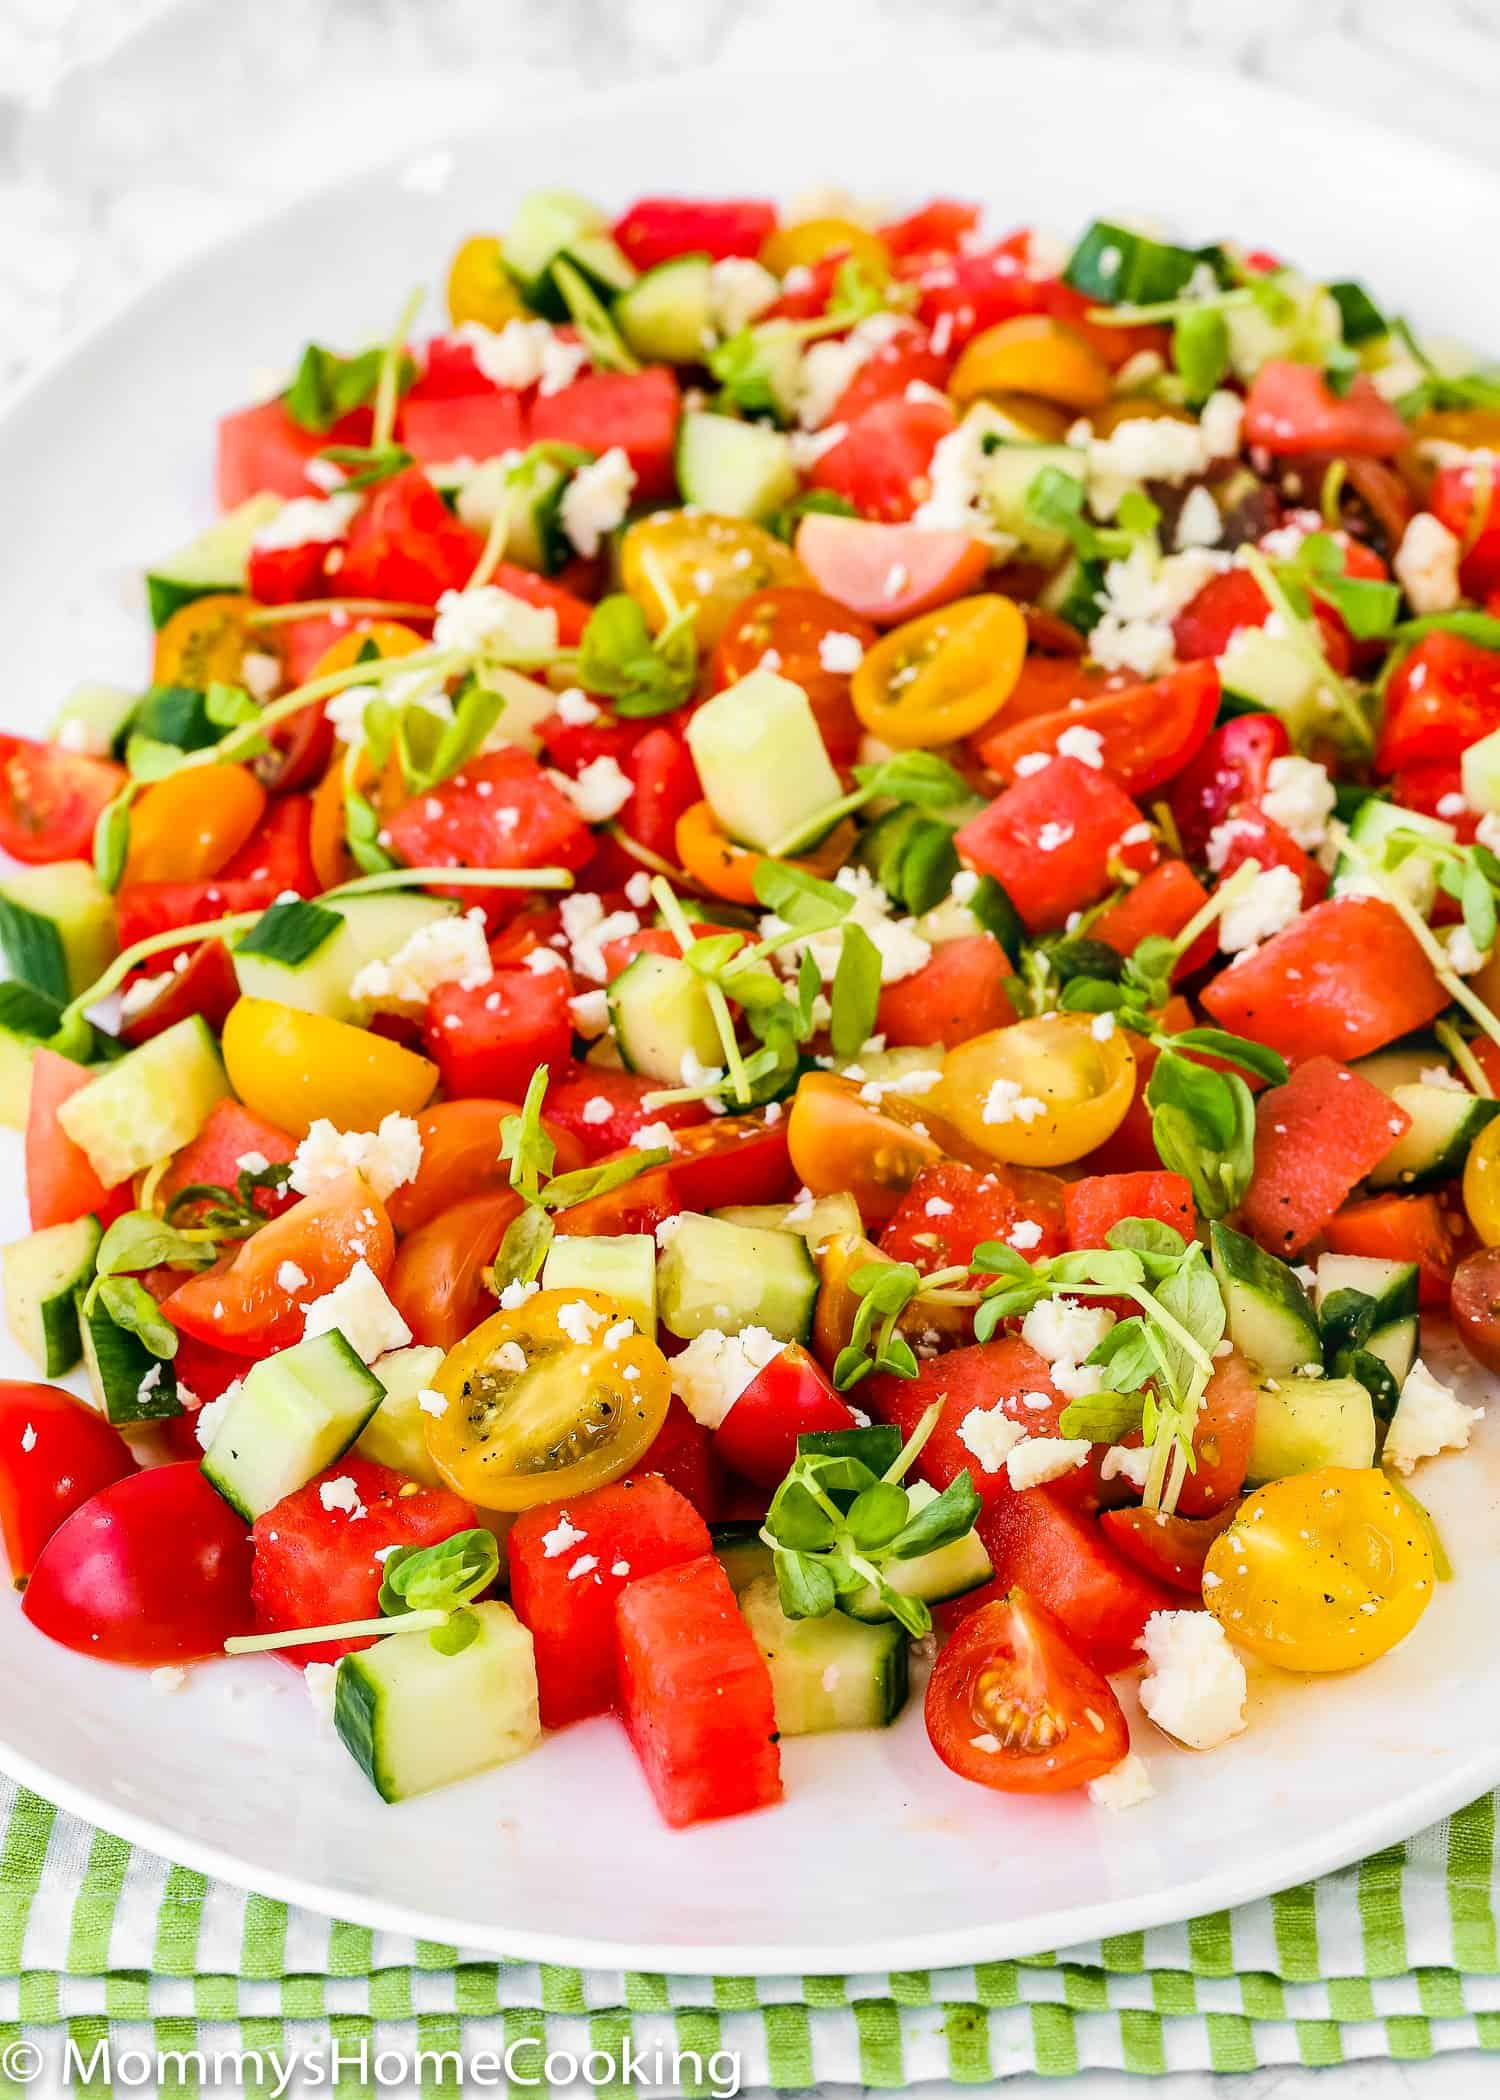 This sweet and savory Easy Watermelon Summer Salad is perfect for summer! You just need to cut out some fresh ingredients, toss and enjoy. All the goodness without the guilt. Done in 15 minutes. https://mommyshomecooking.com